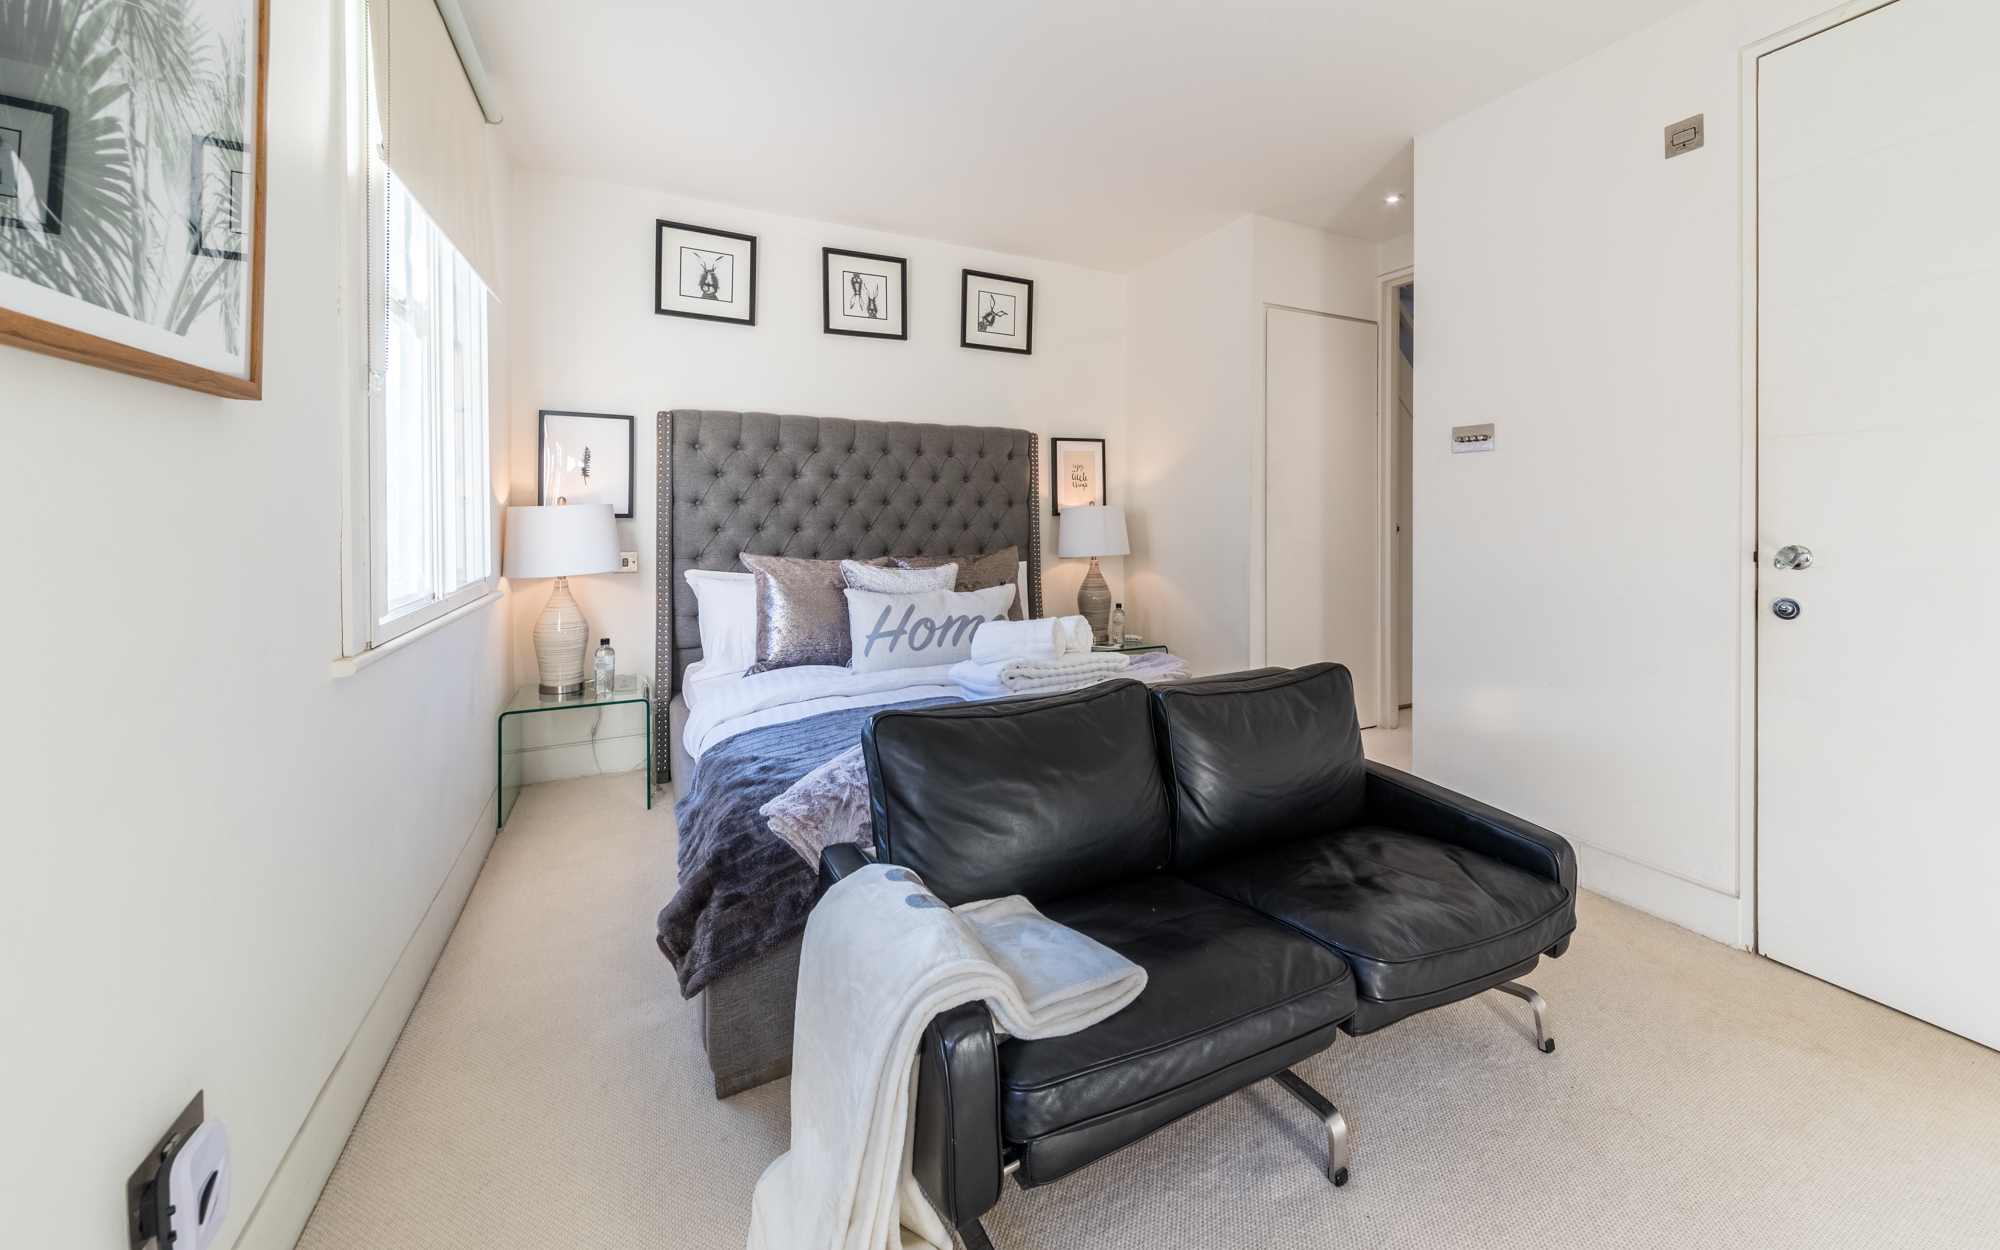 Lovelydays luxury service apartment rental - London - Fitzrovia - Foley Street II - Lovelysuite - 2 bedrooms - 2 bathrooms - Double bed - 687b992bb87d - Lovelydays